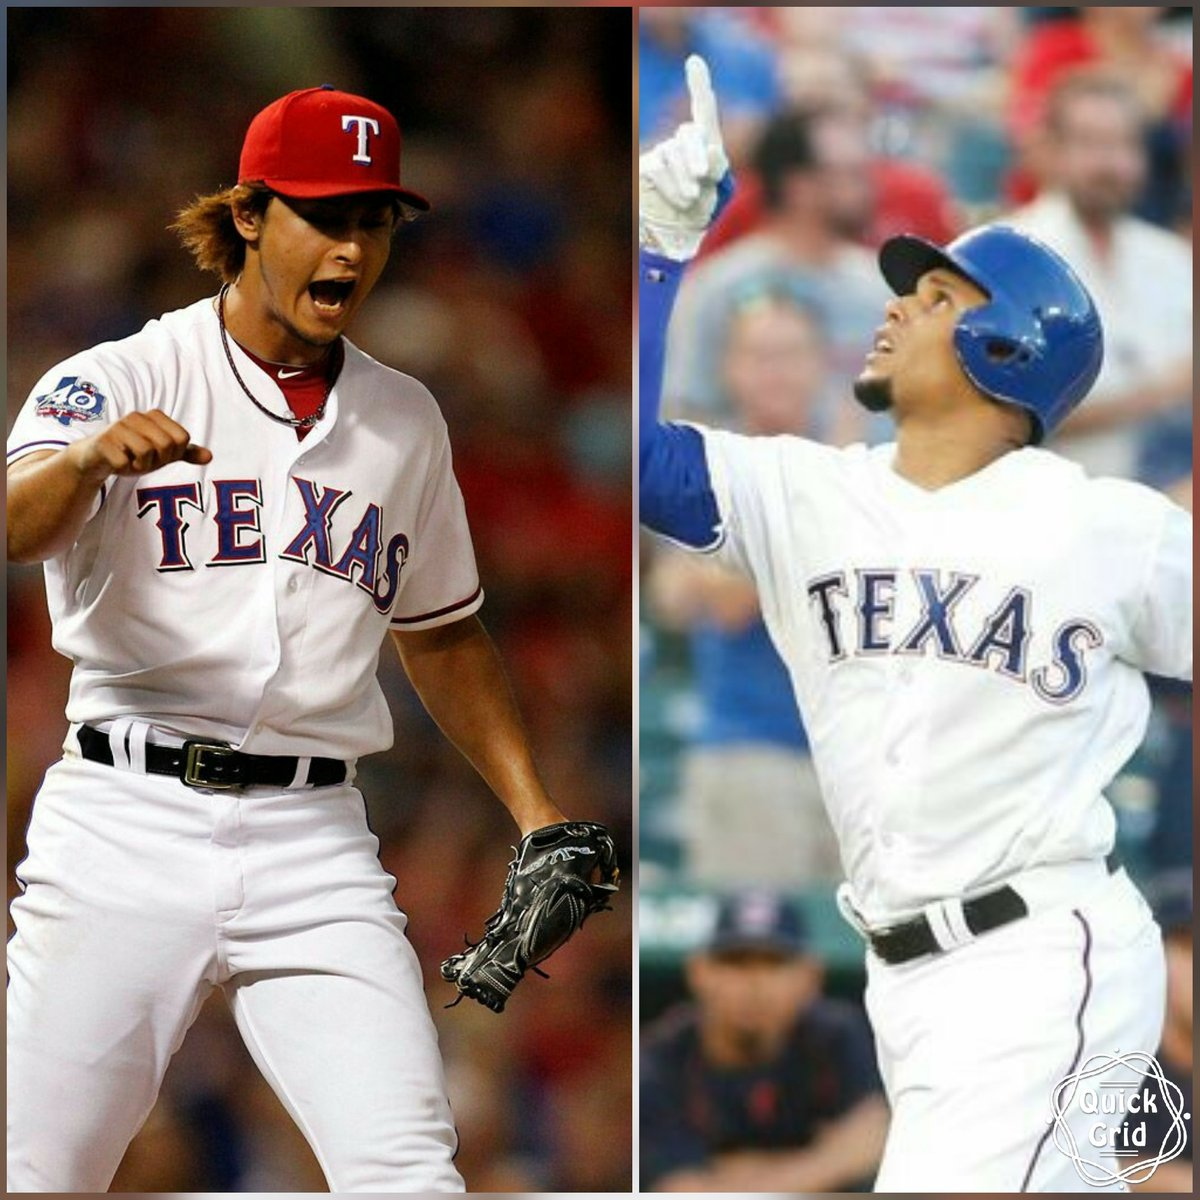 HELLO WIN COLUMN!! Great night @faridyu  and @RealCarlosGomez!! Love our @Rangers. #YU #GOGO #LONESTARGRIT #NEVEREVERQUIT #RANGERSNATION <br>http://pic.twitter.com/6Kb9gouSPs